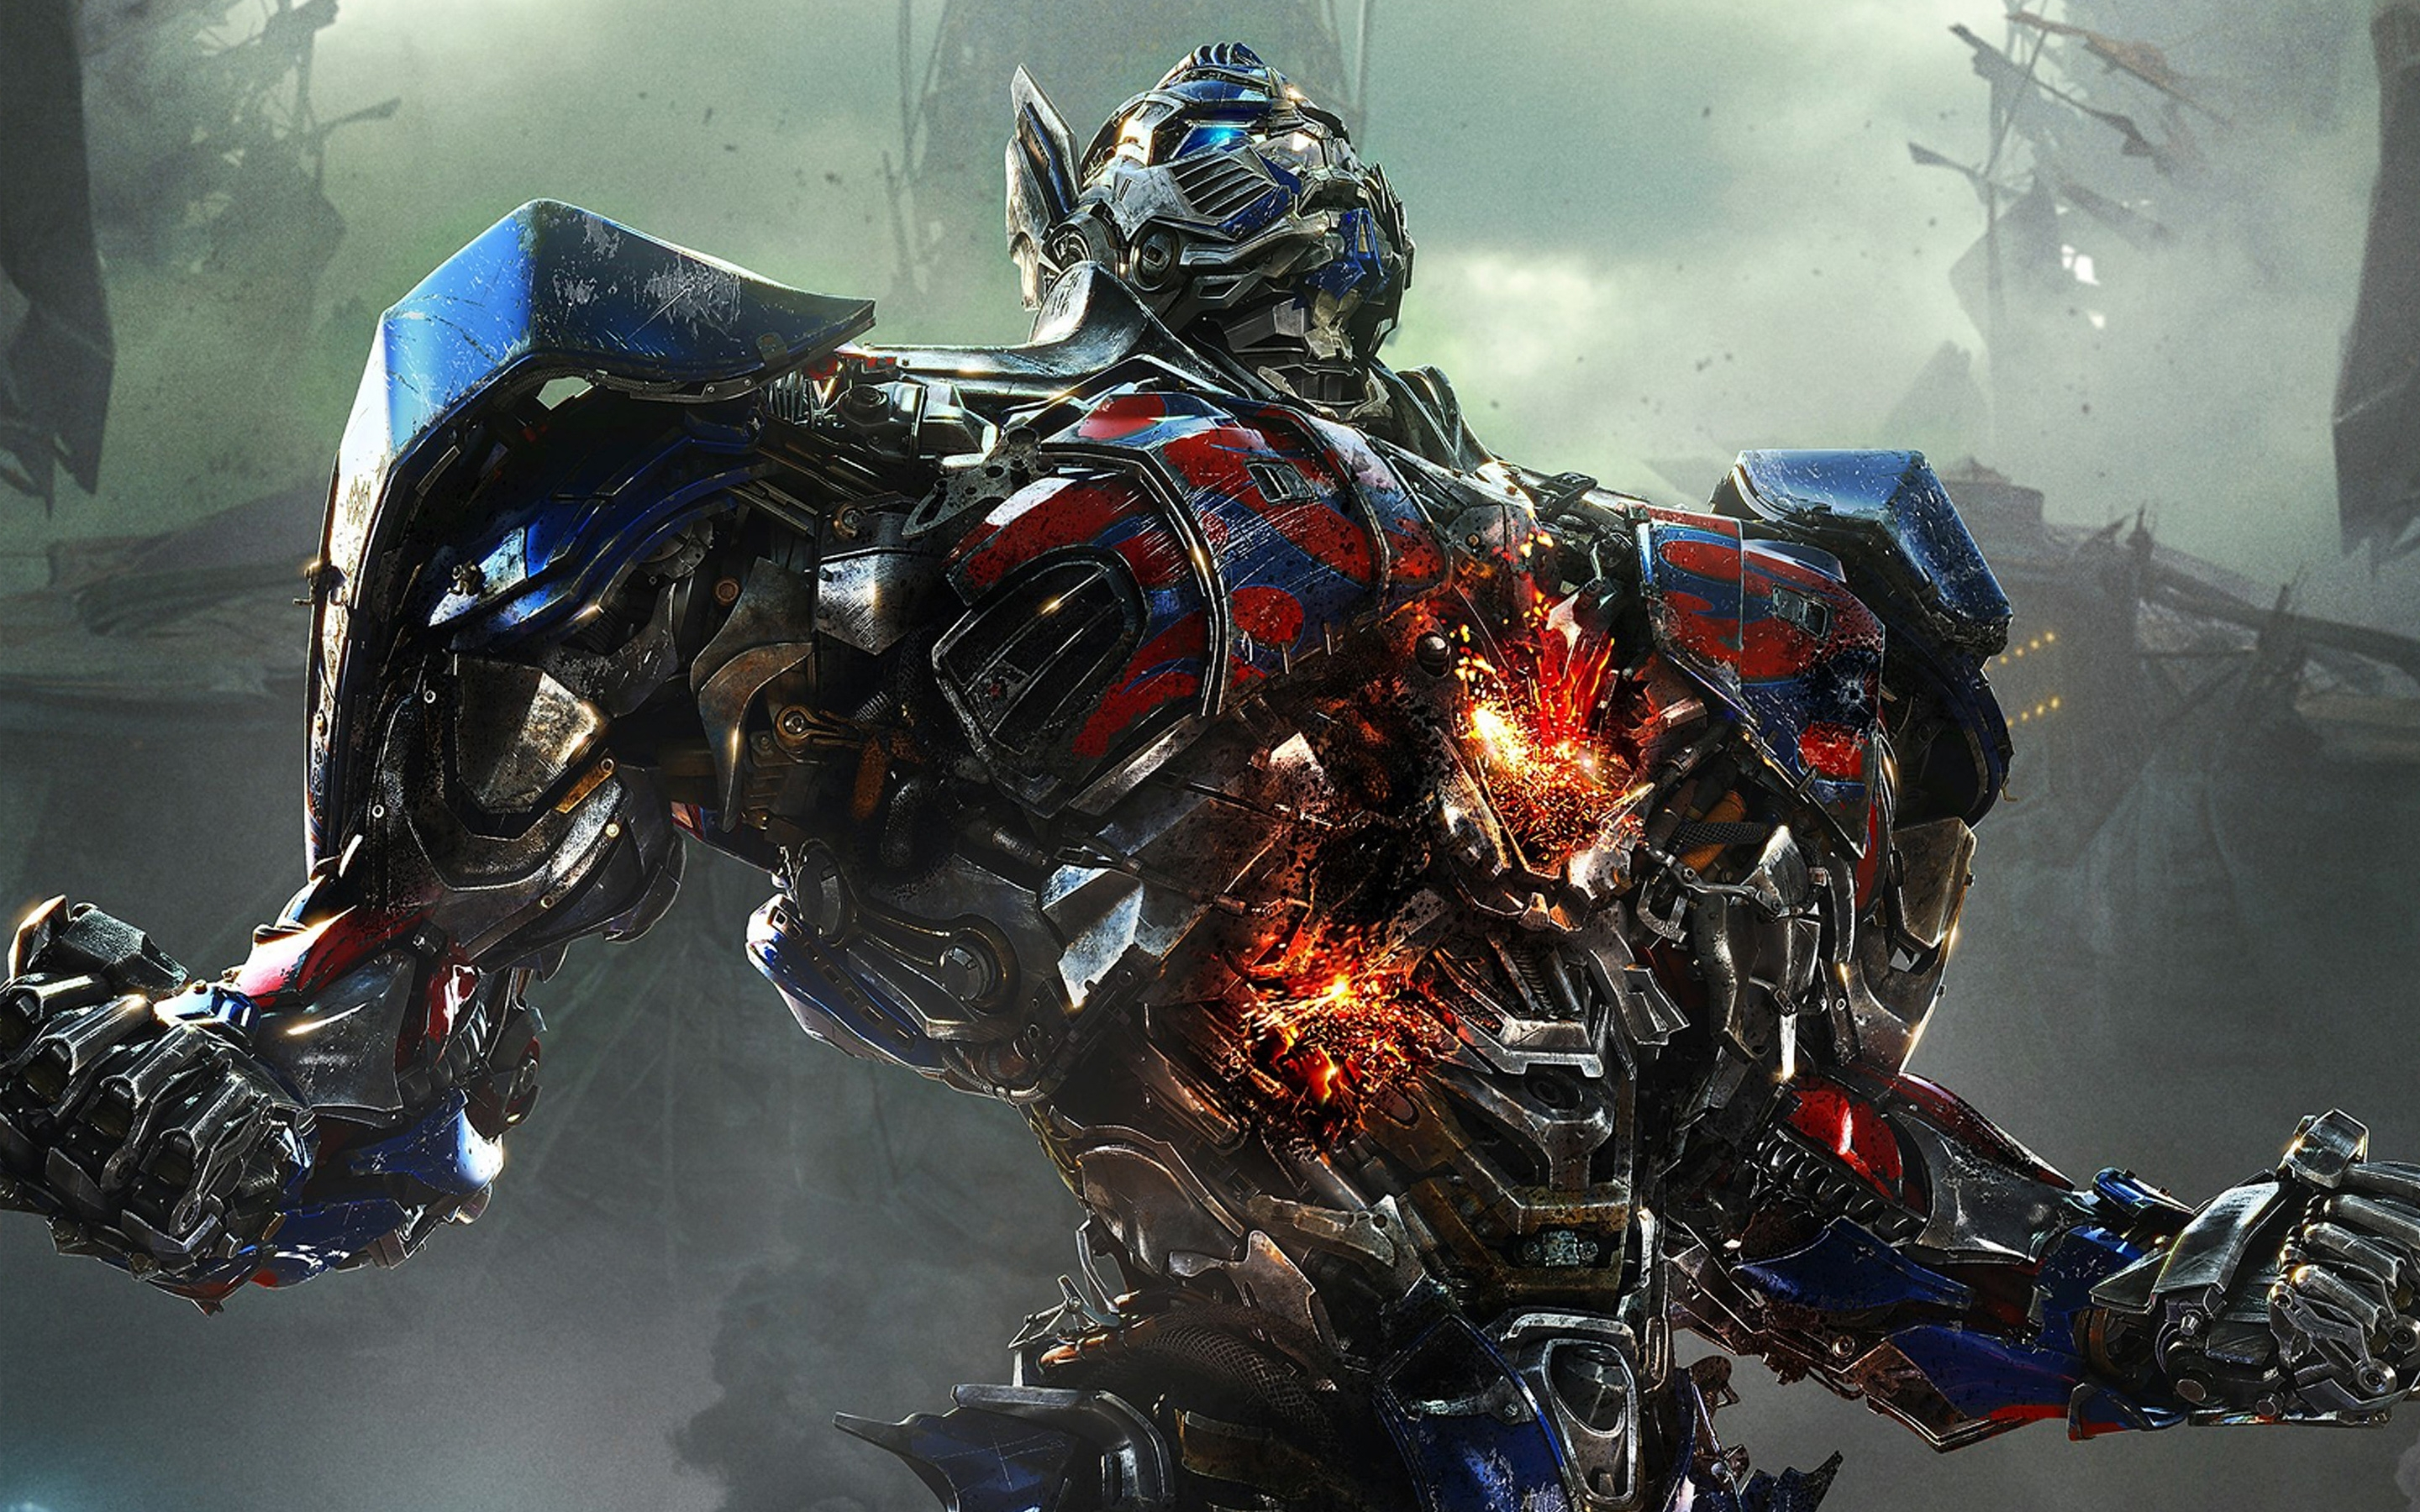 transformers wallpapers - page 1 - hd wallpapers